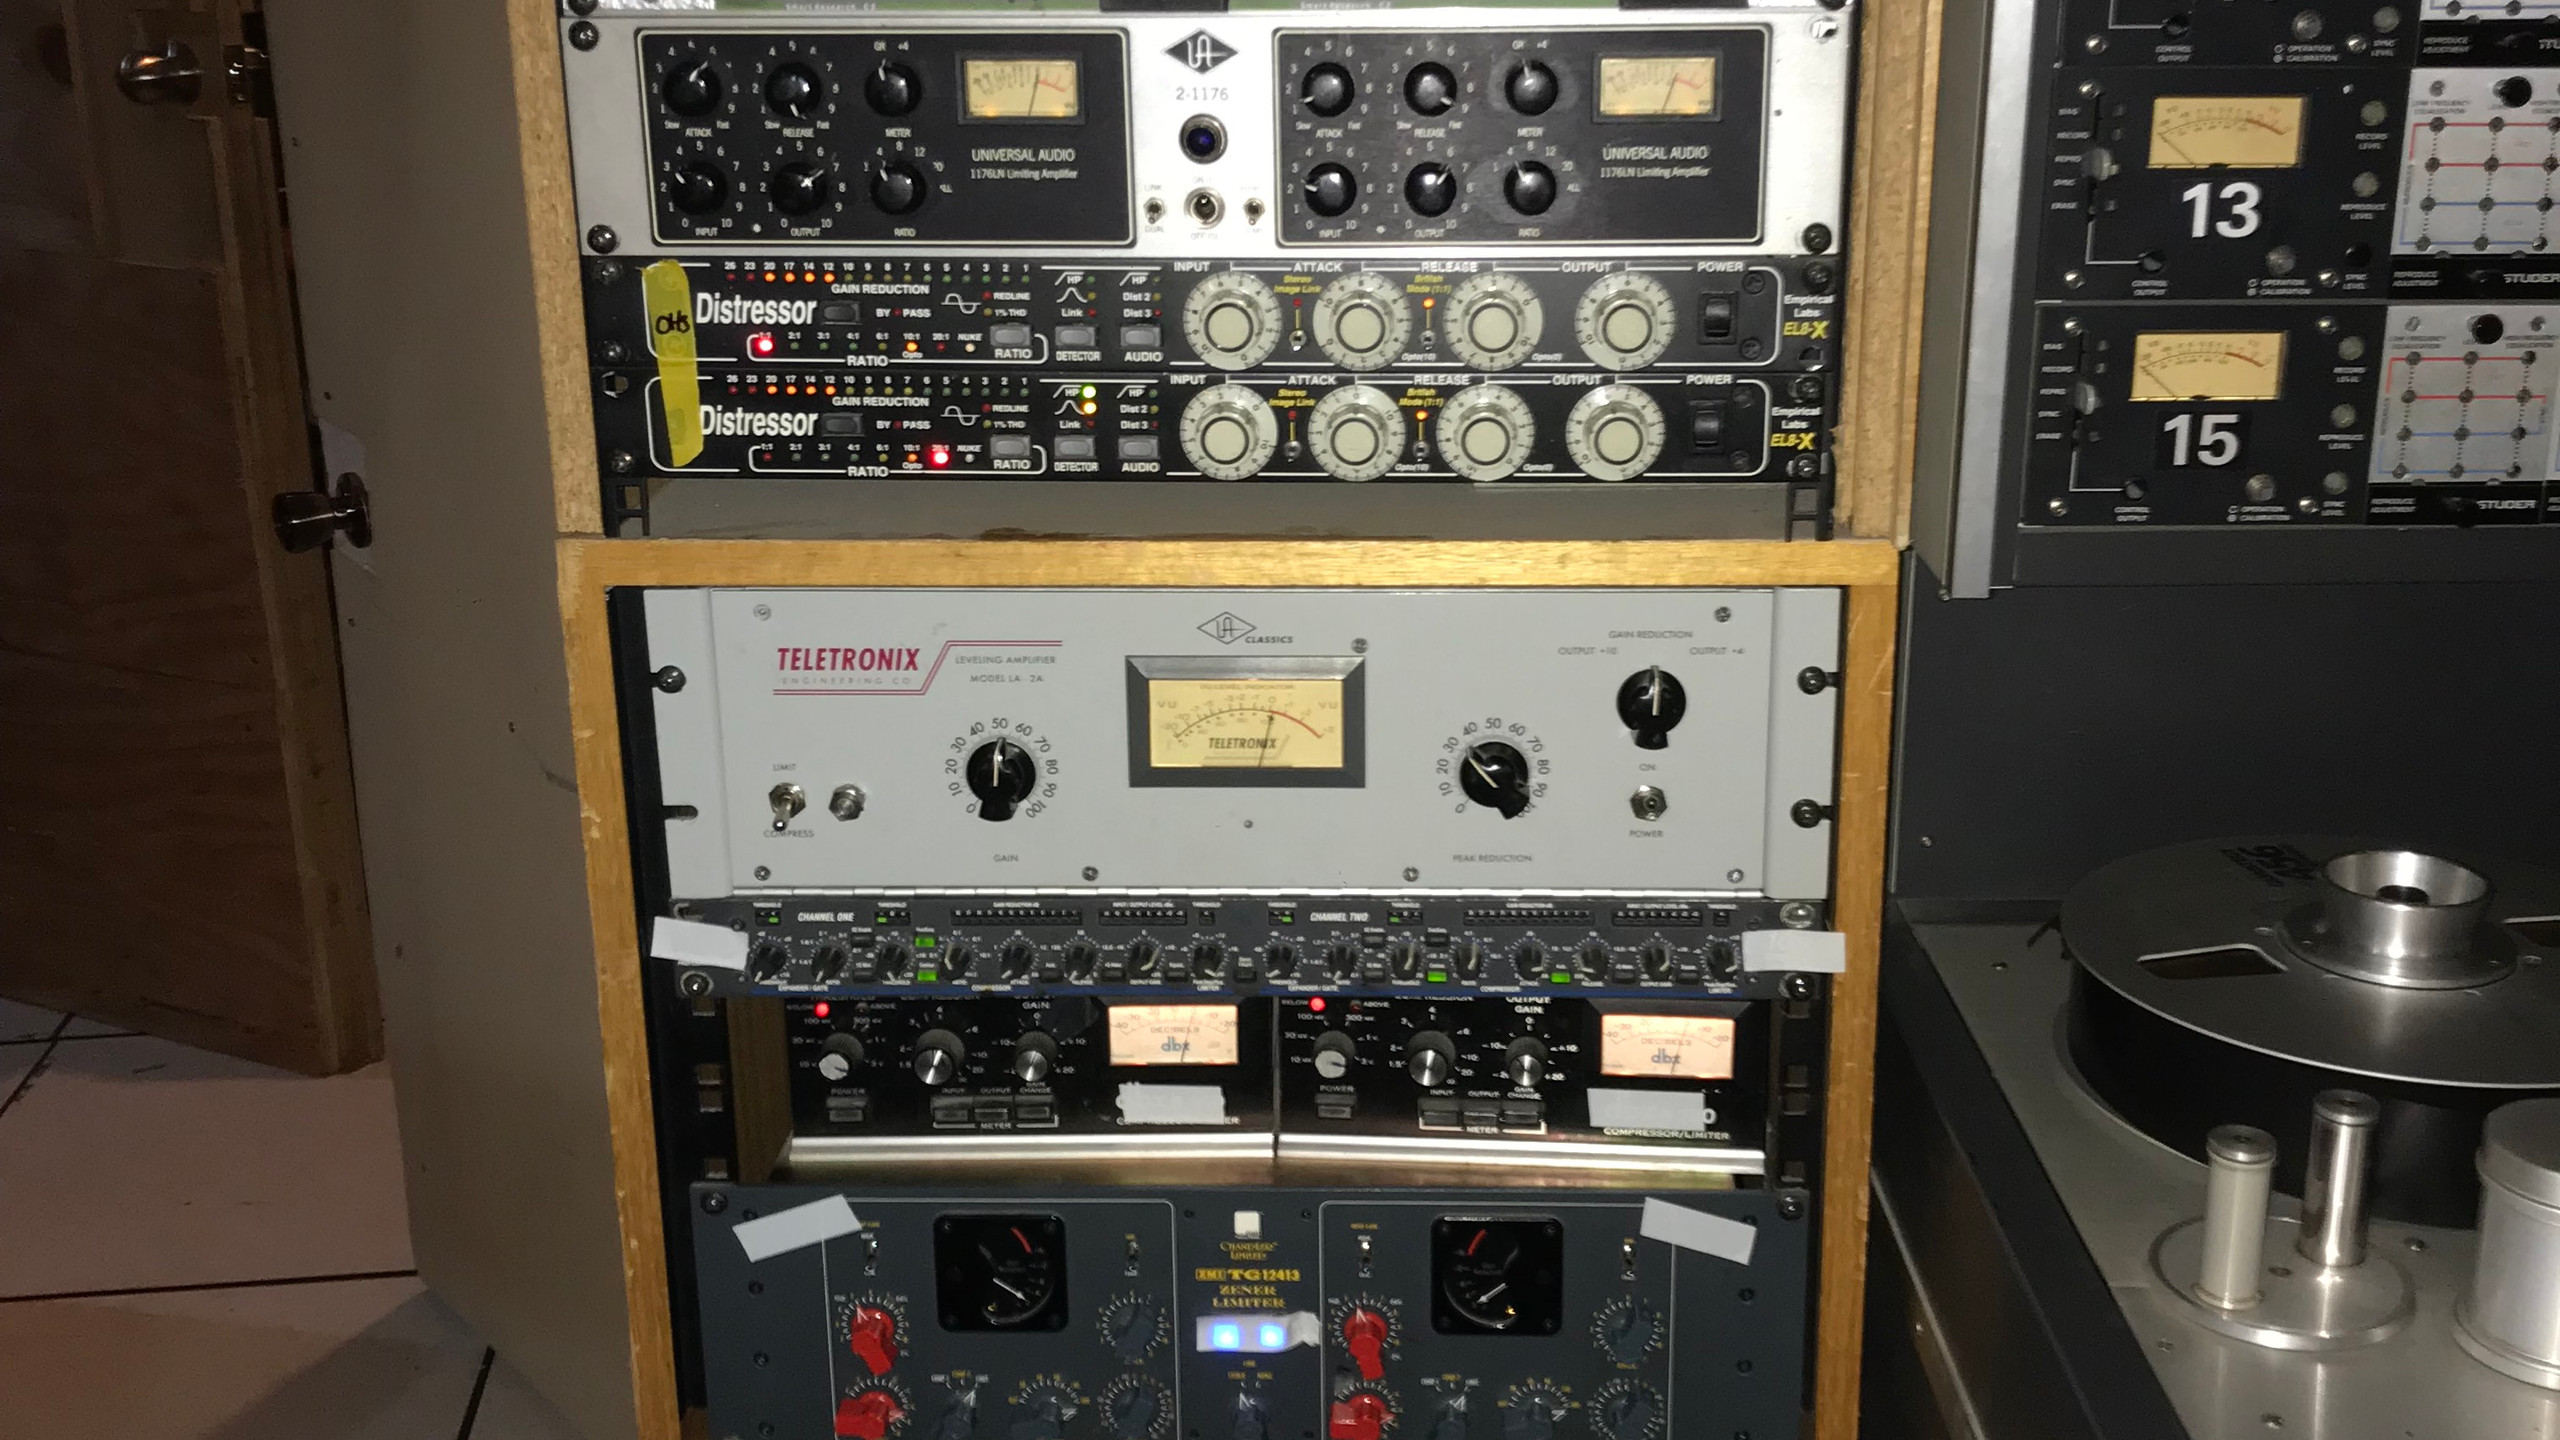 The Outboard gear